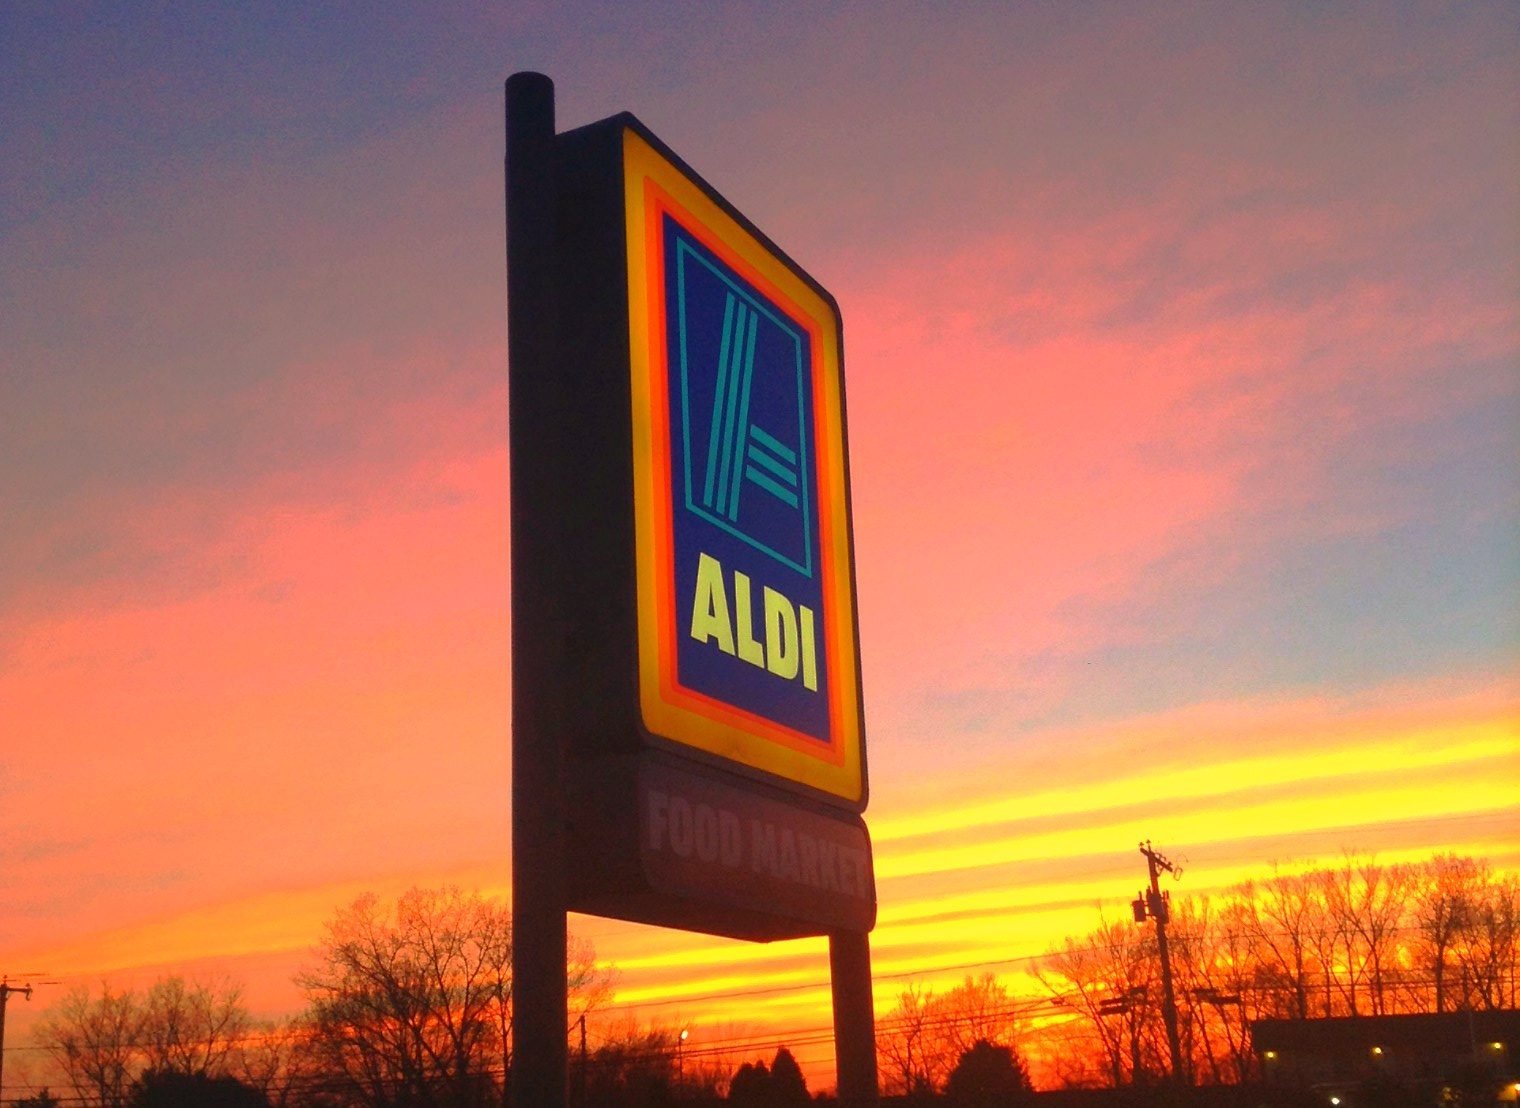 Discount Supermarket Chain Aldi Prepping To Take On Walmart & Others In U.S.